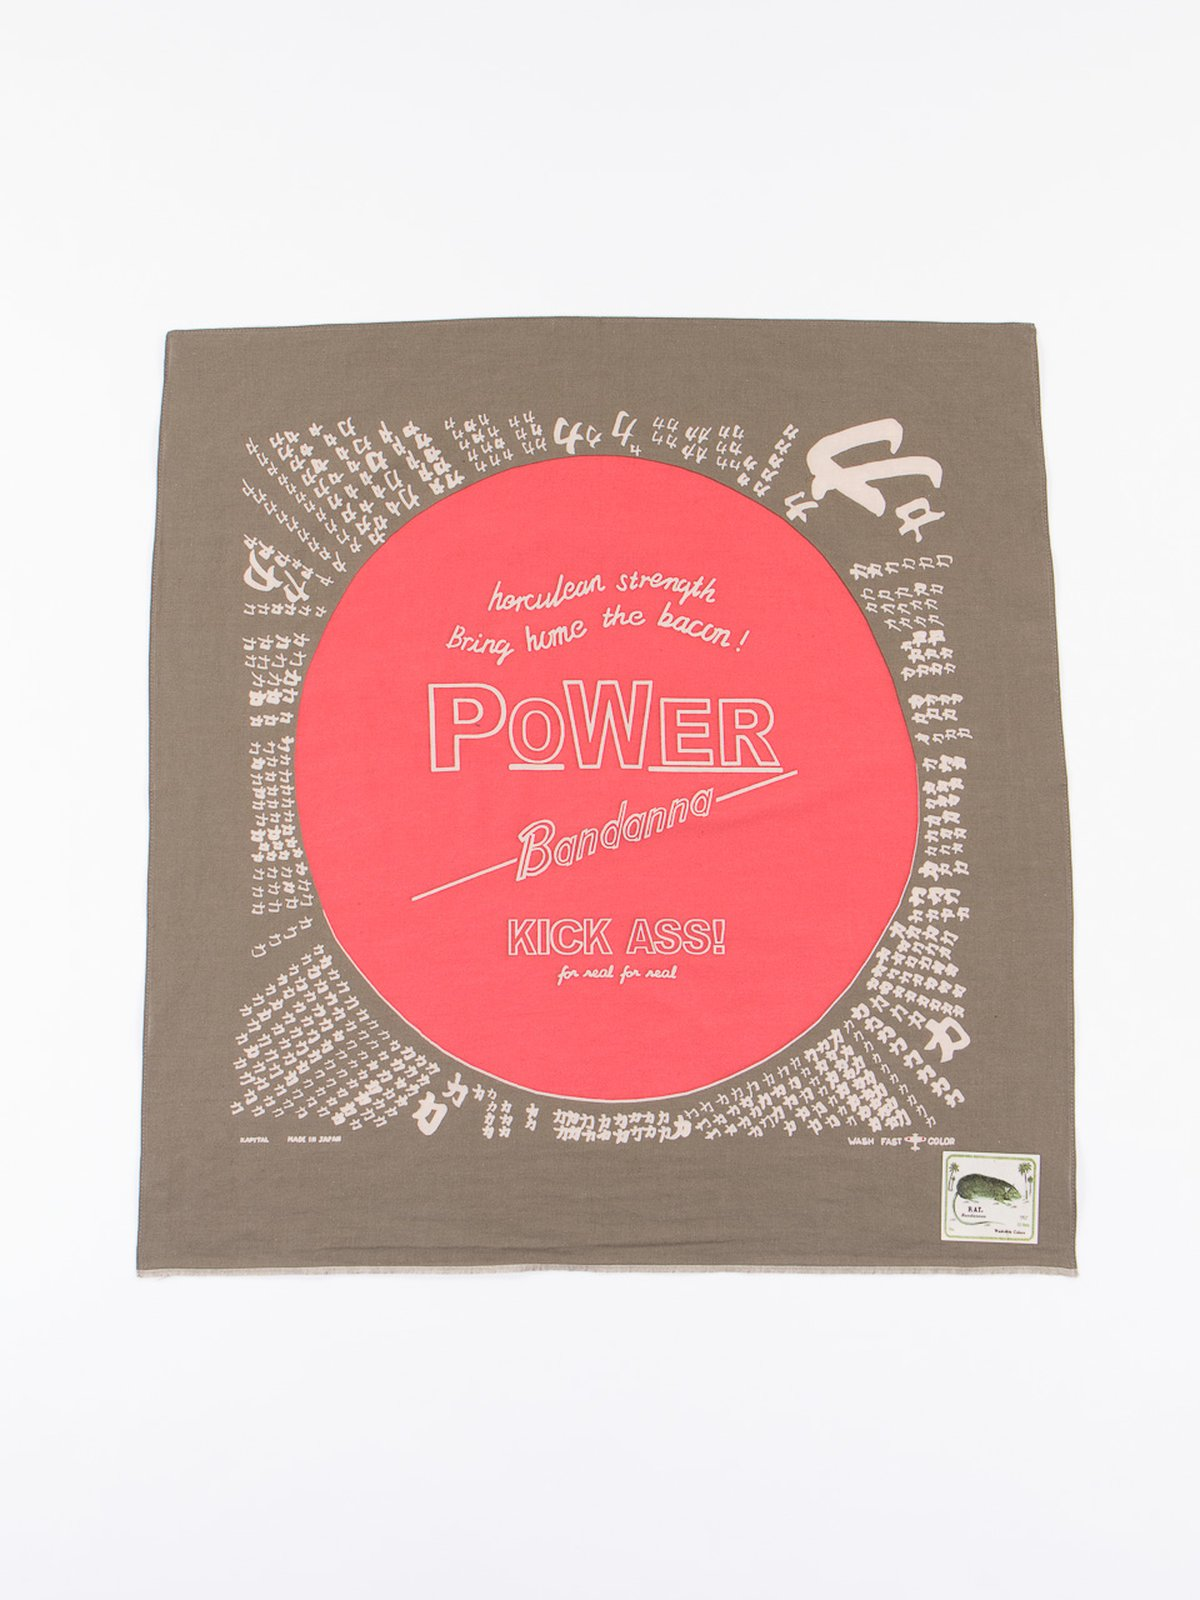 Khaki Power Bandana - Image 1